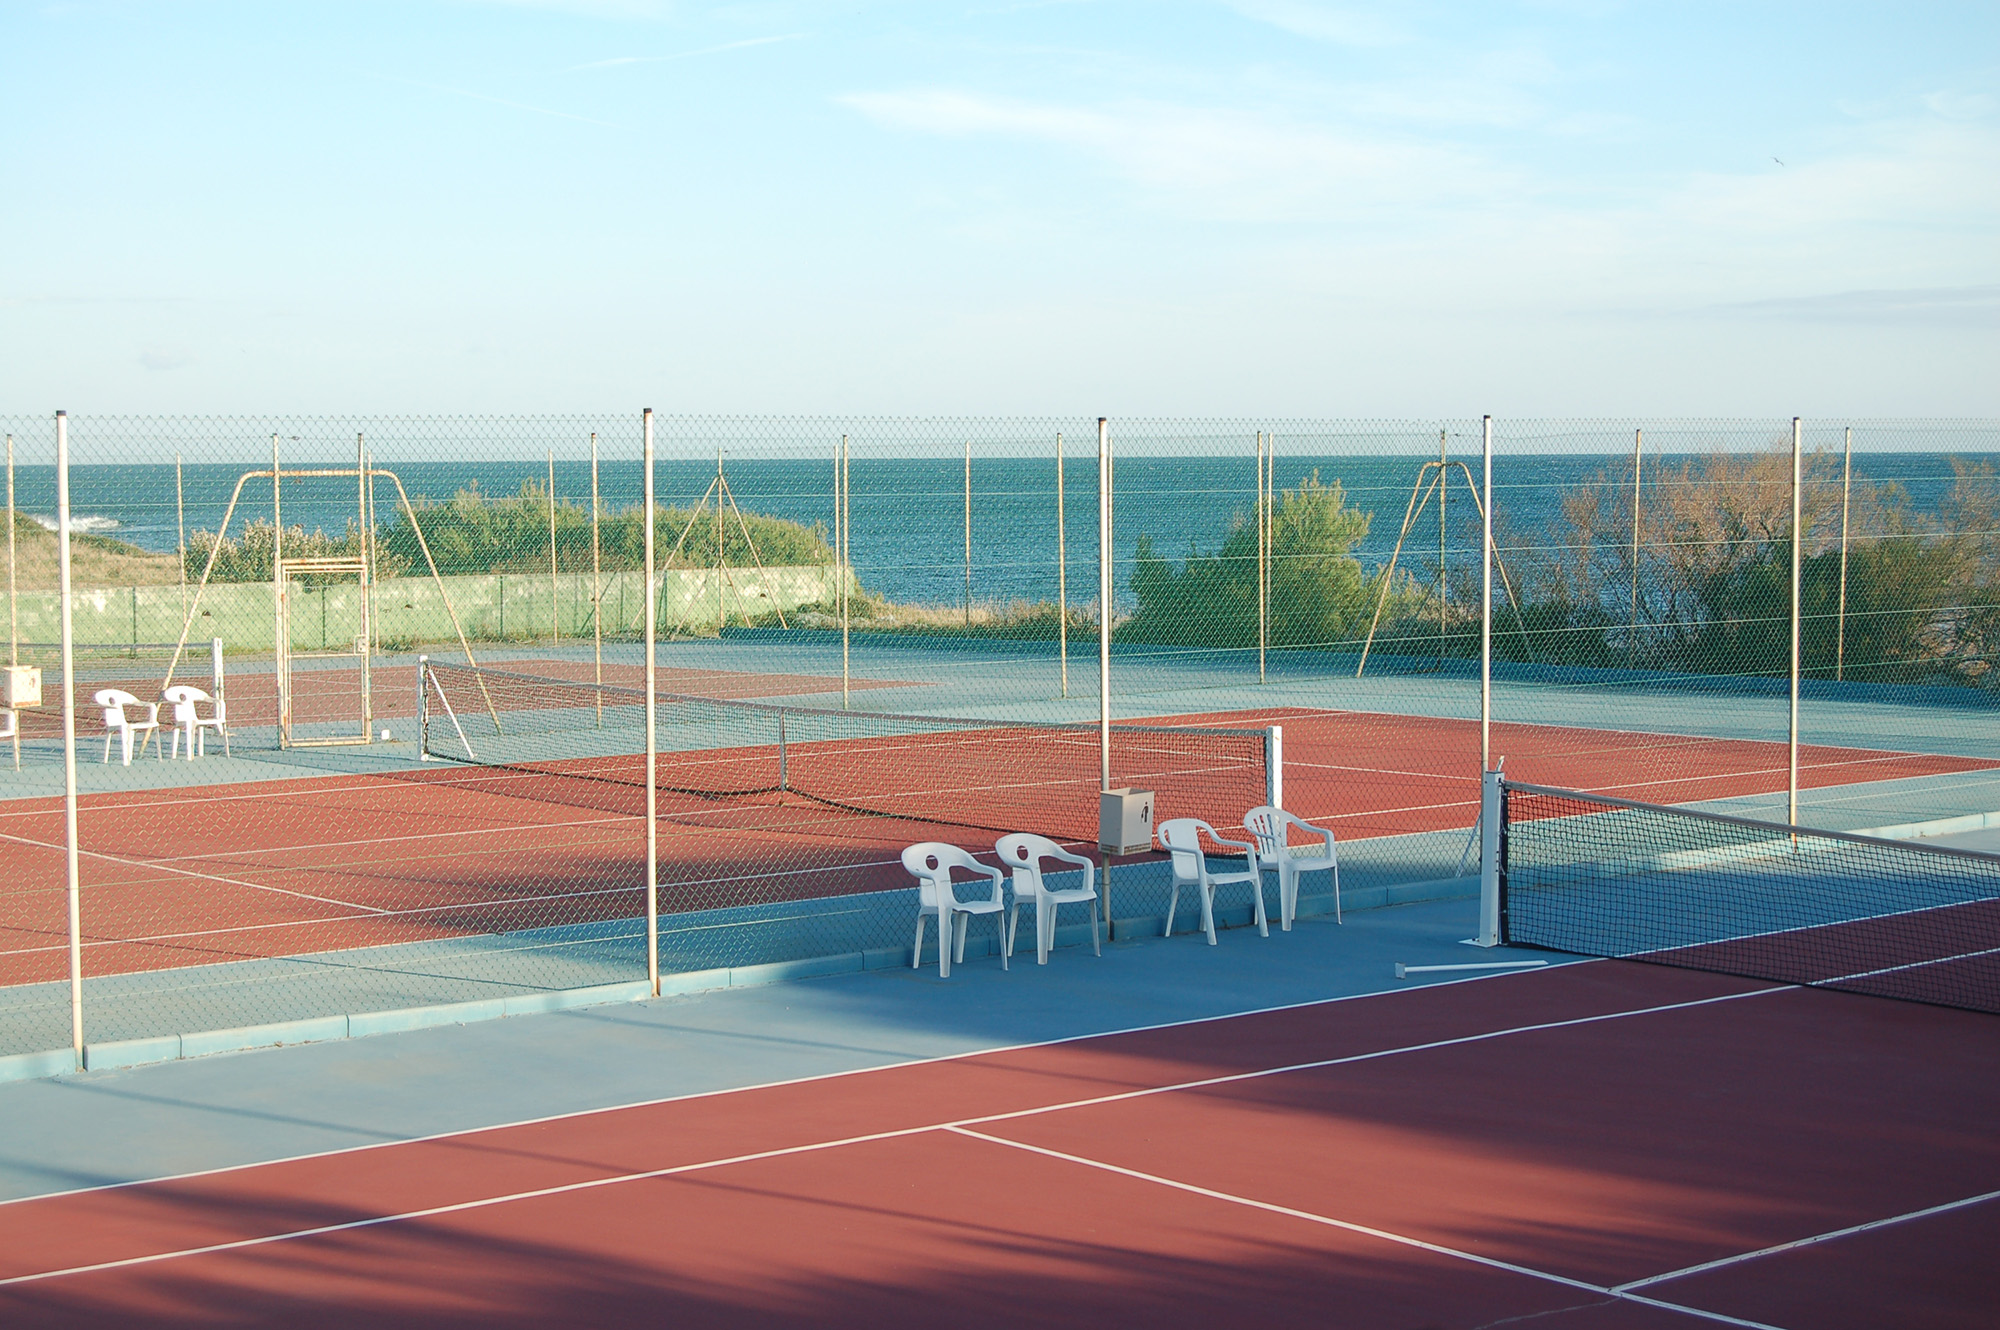 The most beautiful tennis court